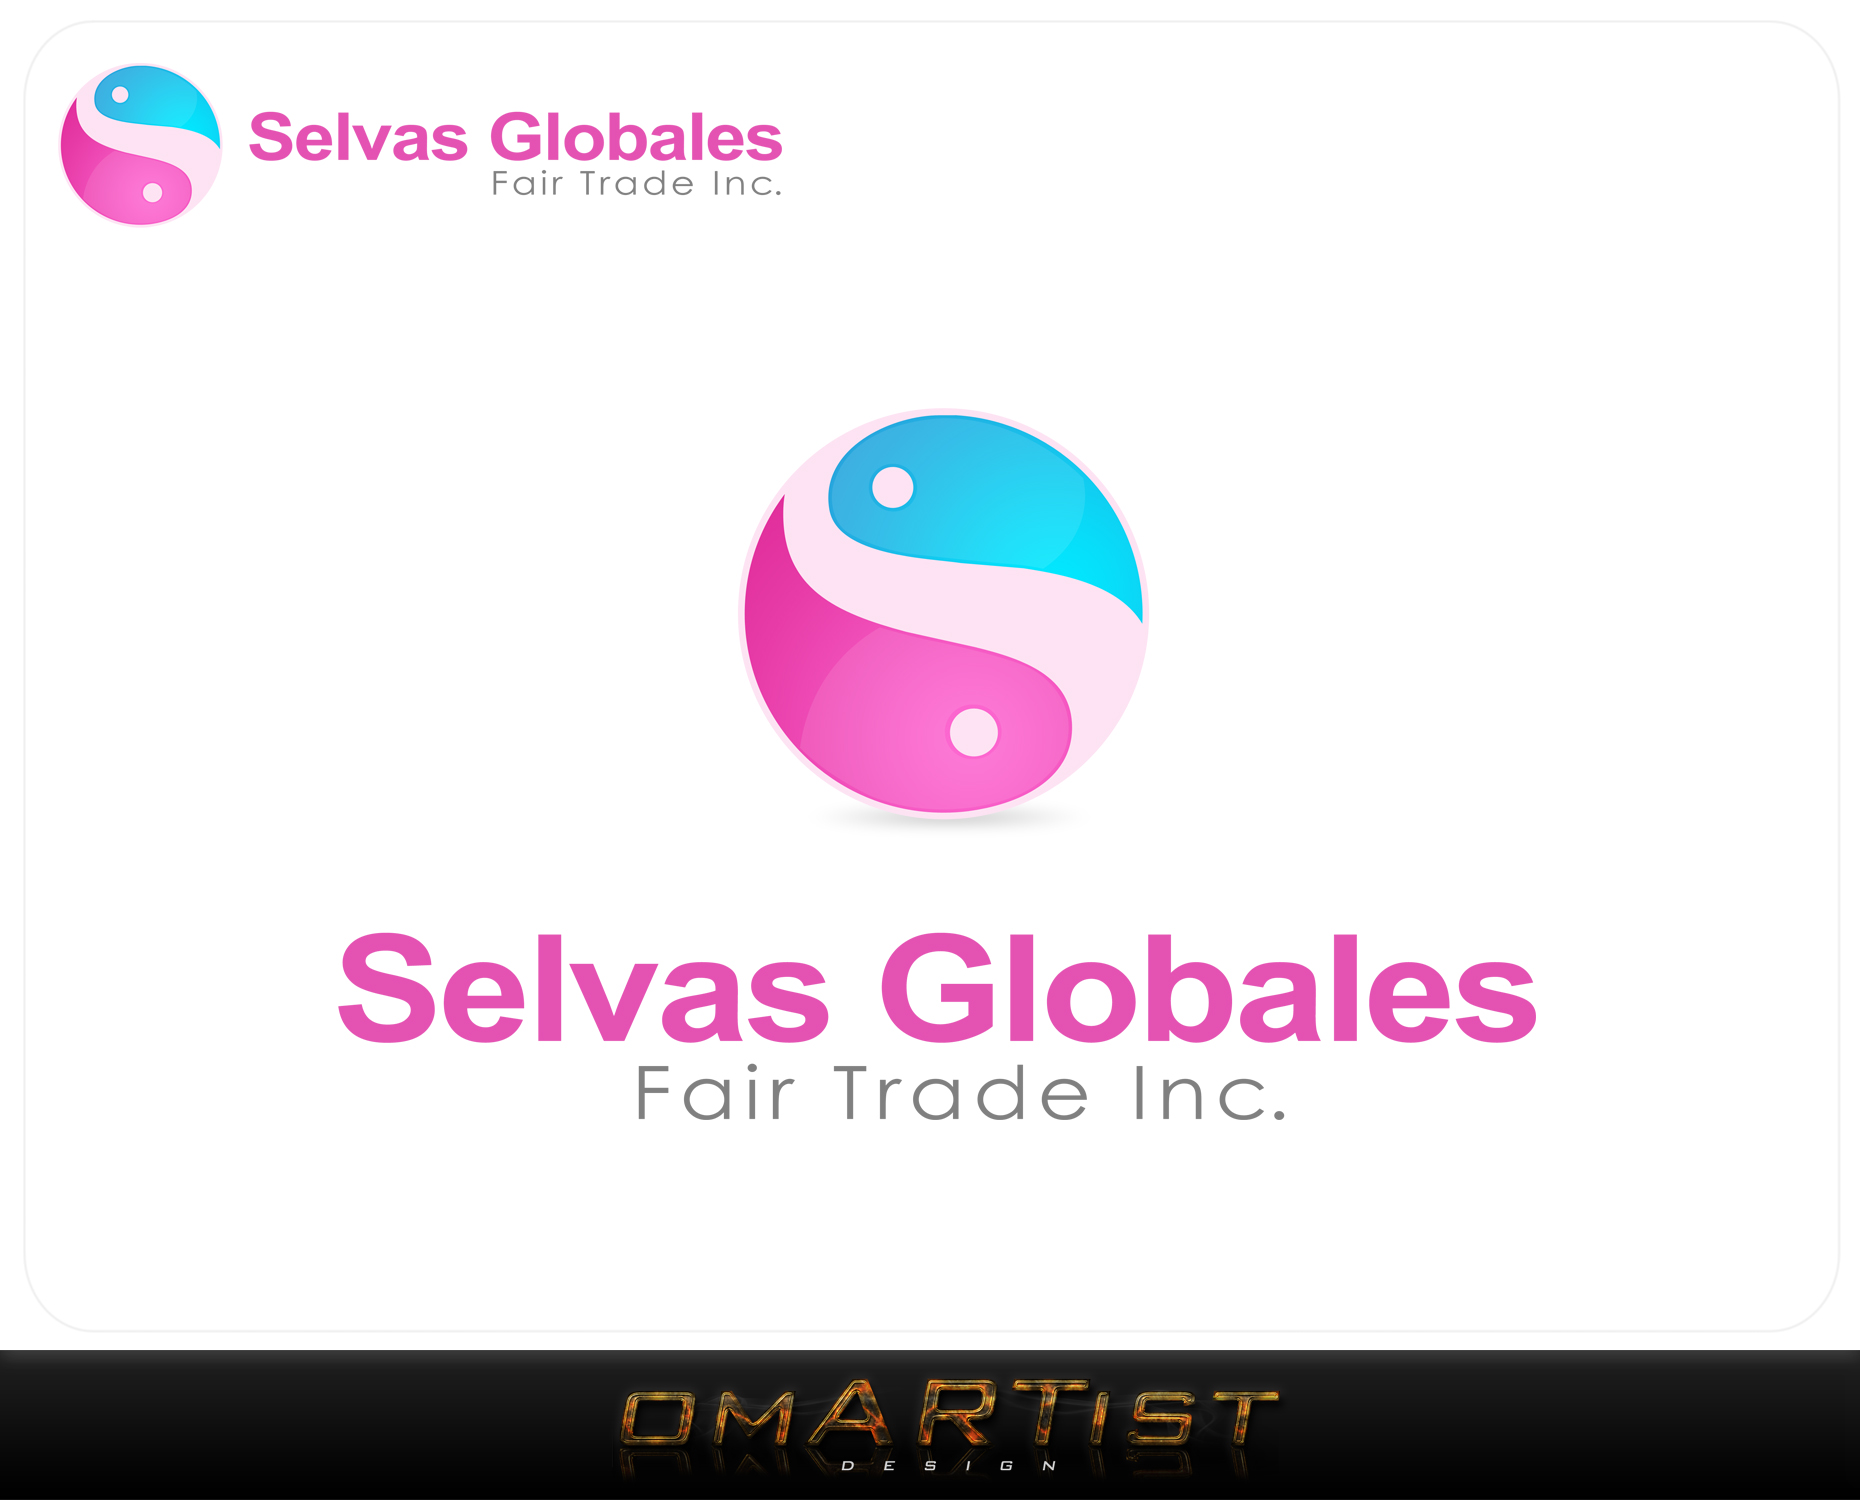 Logo Design by omARTist - Entry No. 38 in the Logo Design Contest Captivating Logo Design for Selvas Globales Fair Trade Inc..